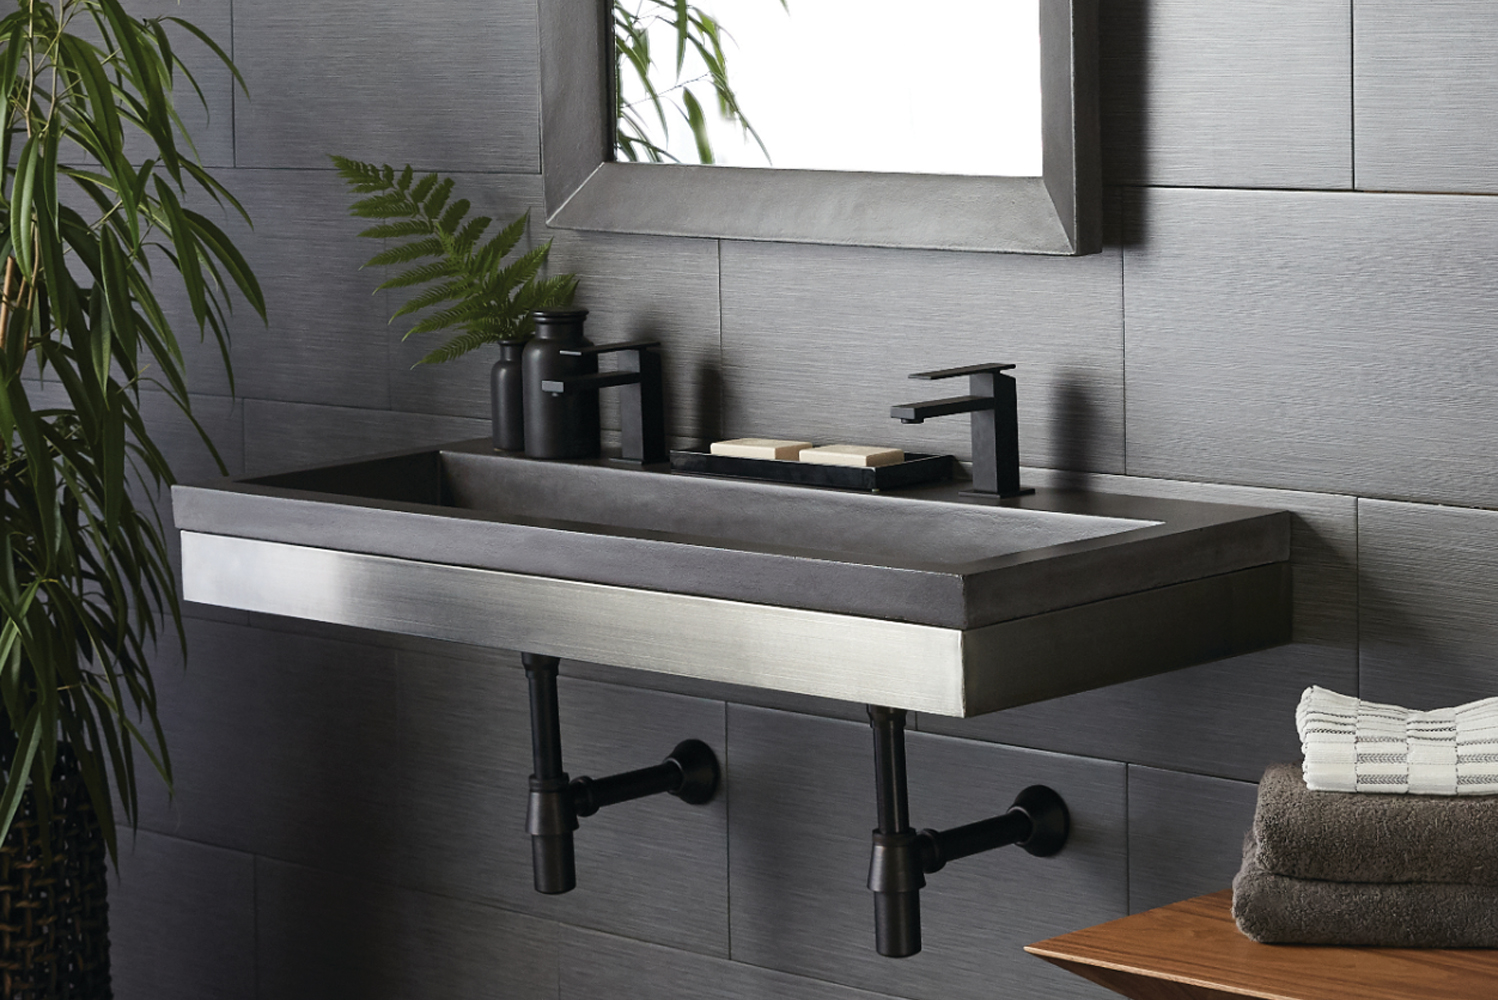 Introducing Zaca wall mount, the latest bathroom vanity from kitchen and bath manufacturer Native Trails.